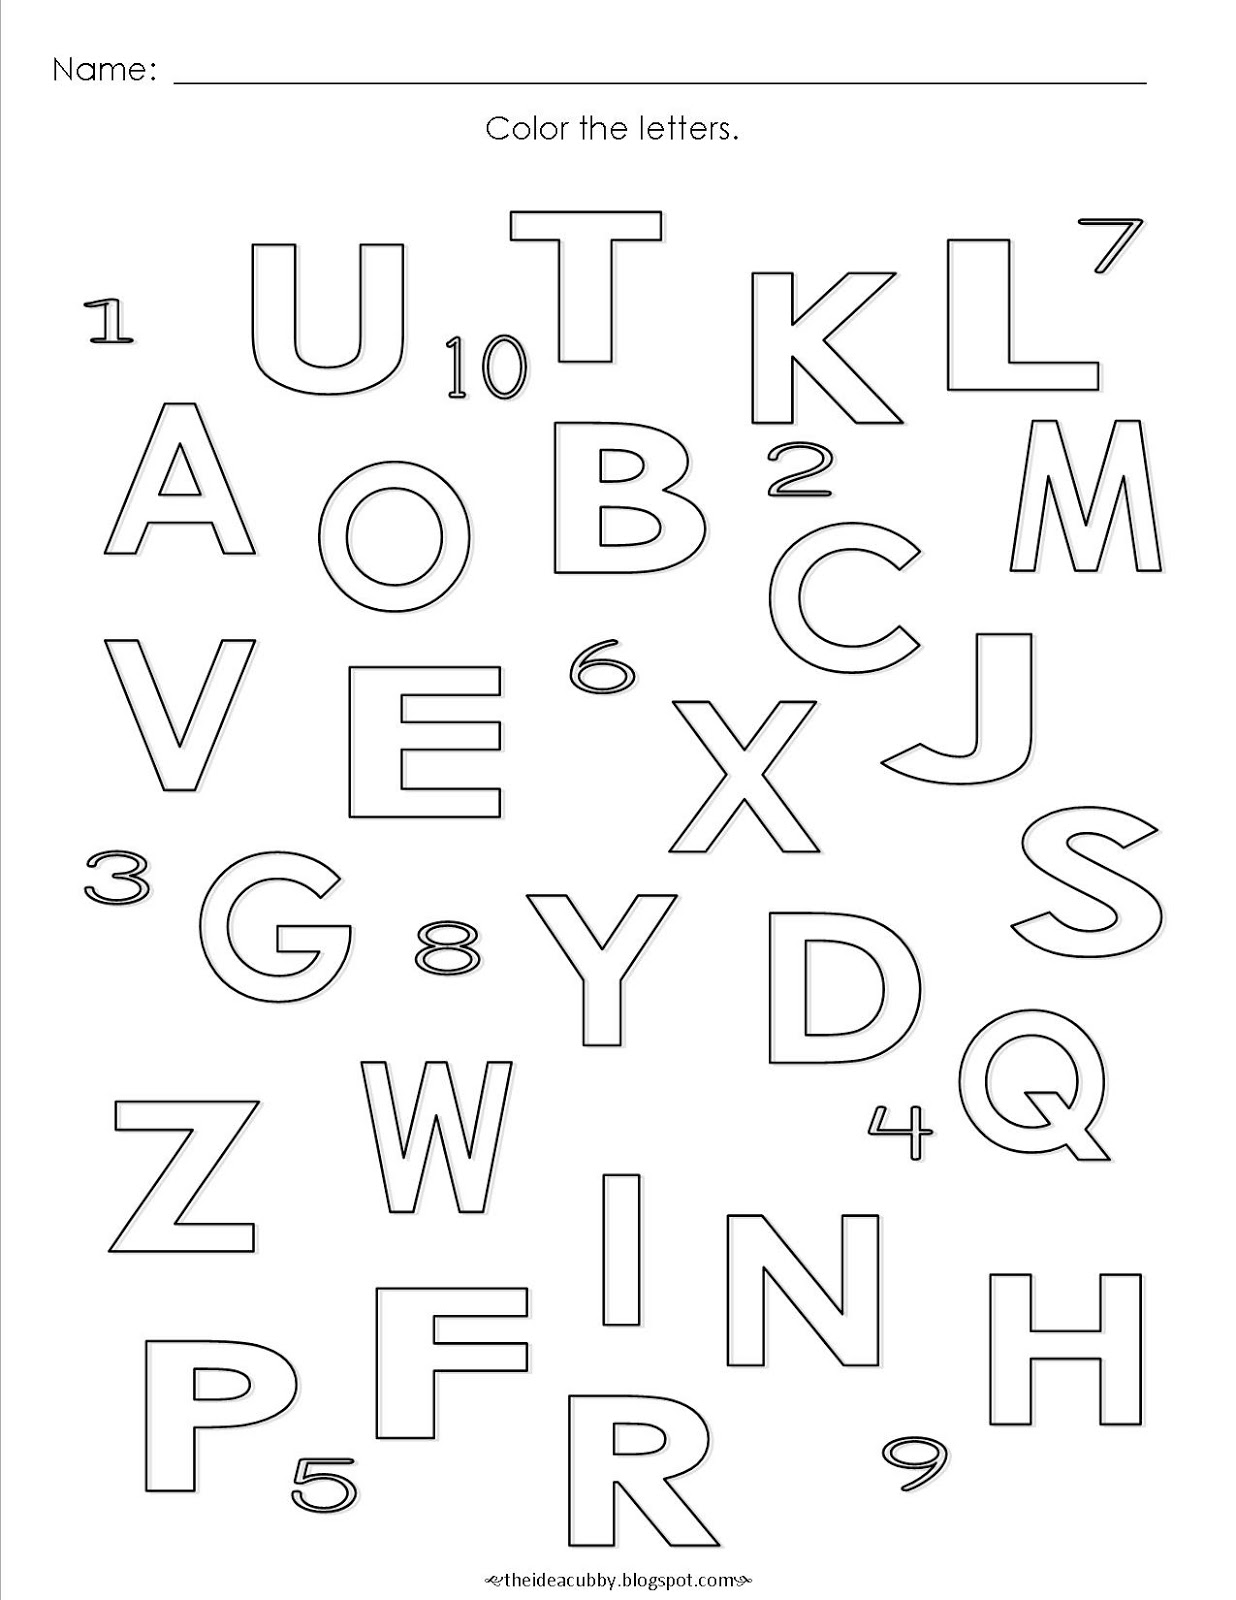 The Idea Cubby: Alphabet Coloring Page